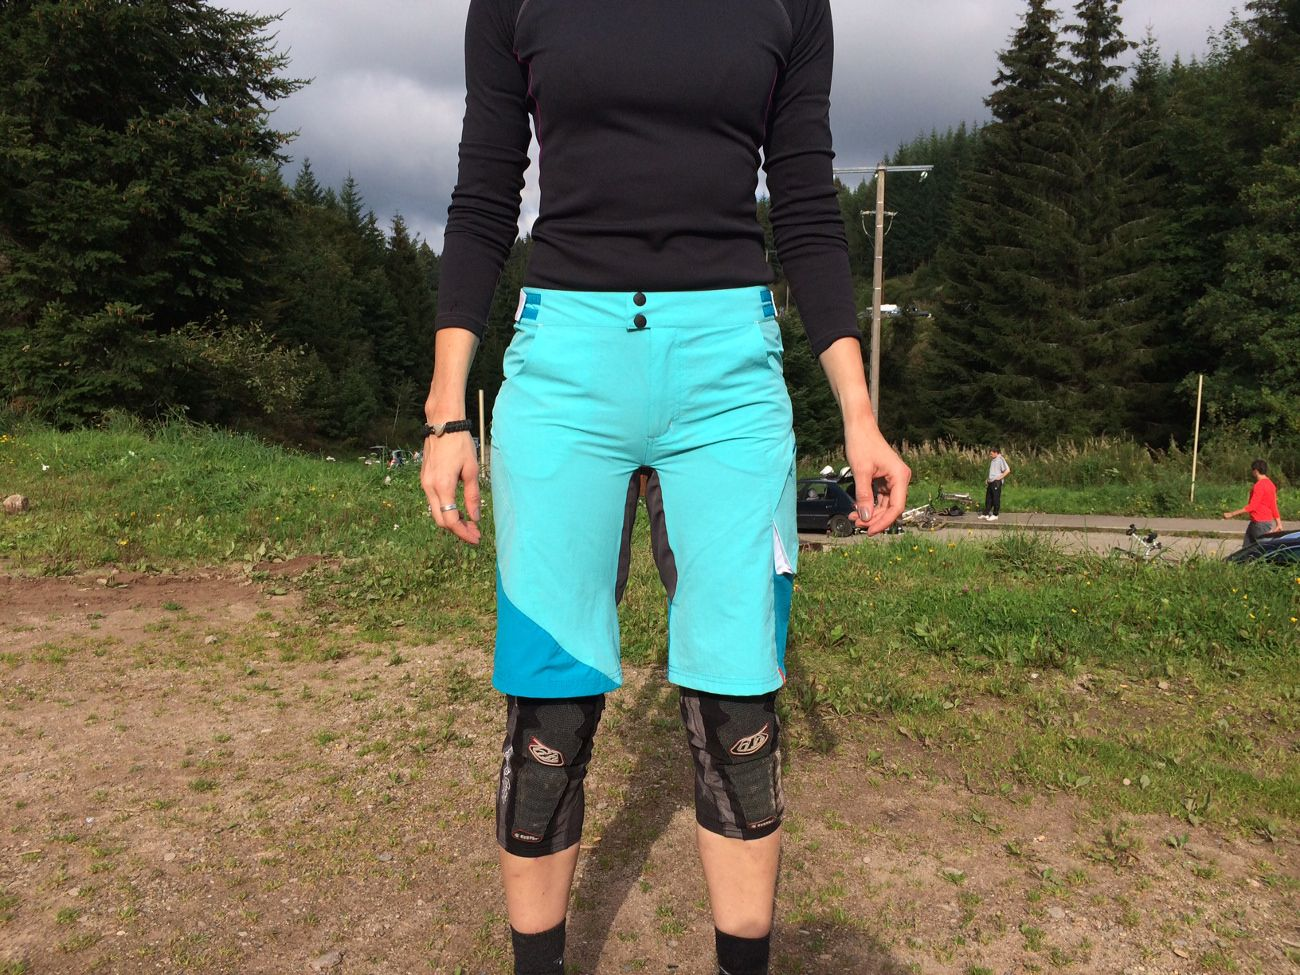 Mountain Biking Women · Best Mountain Bikes · Laura s first impressions of  the shorts were great 631baf851a